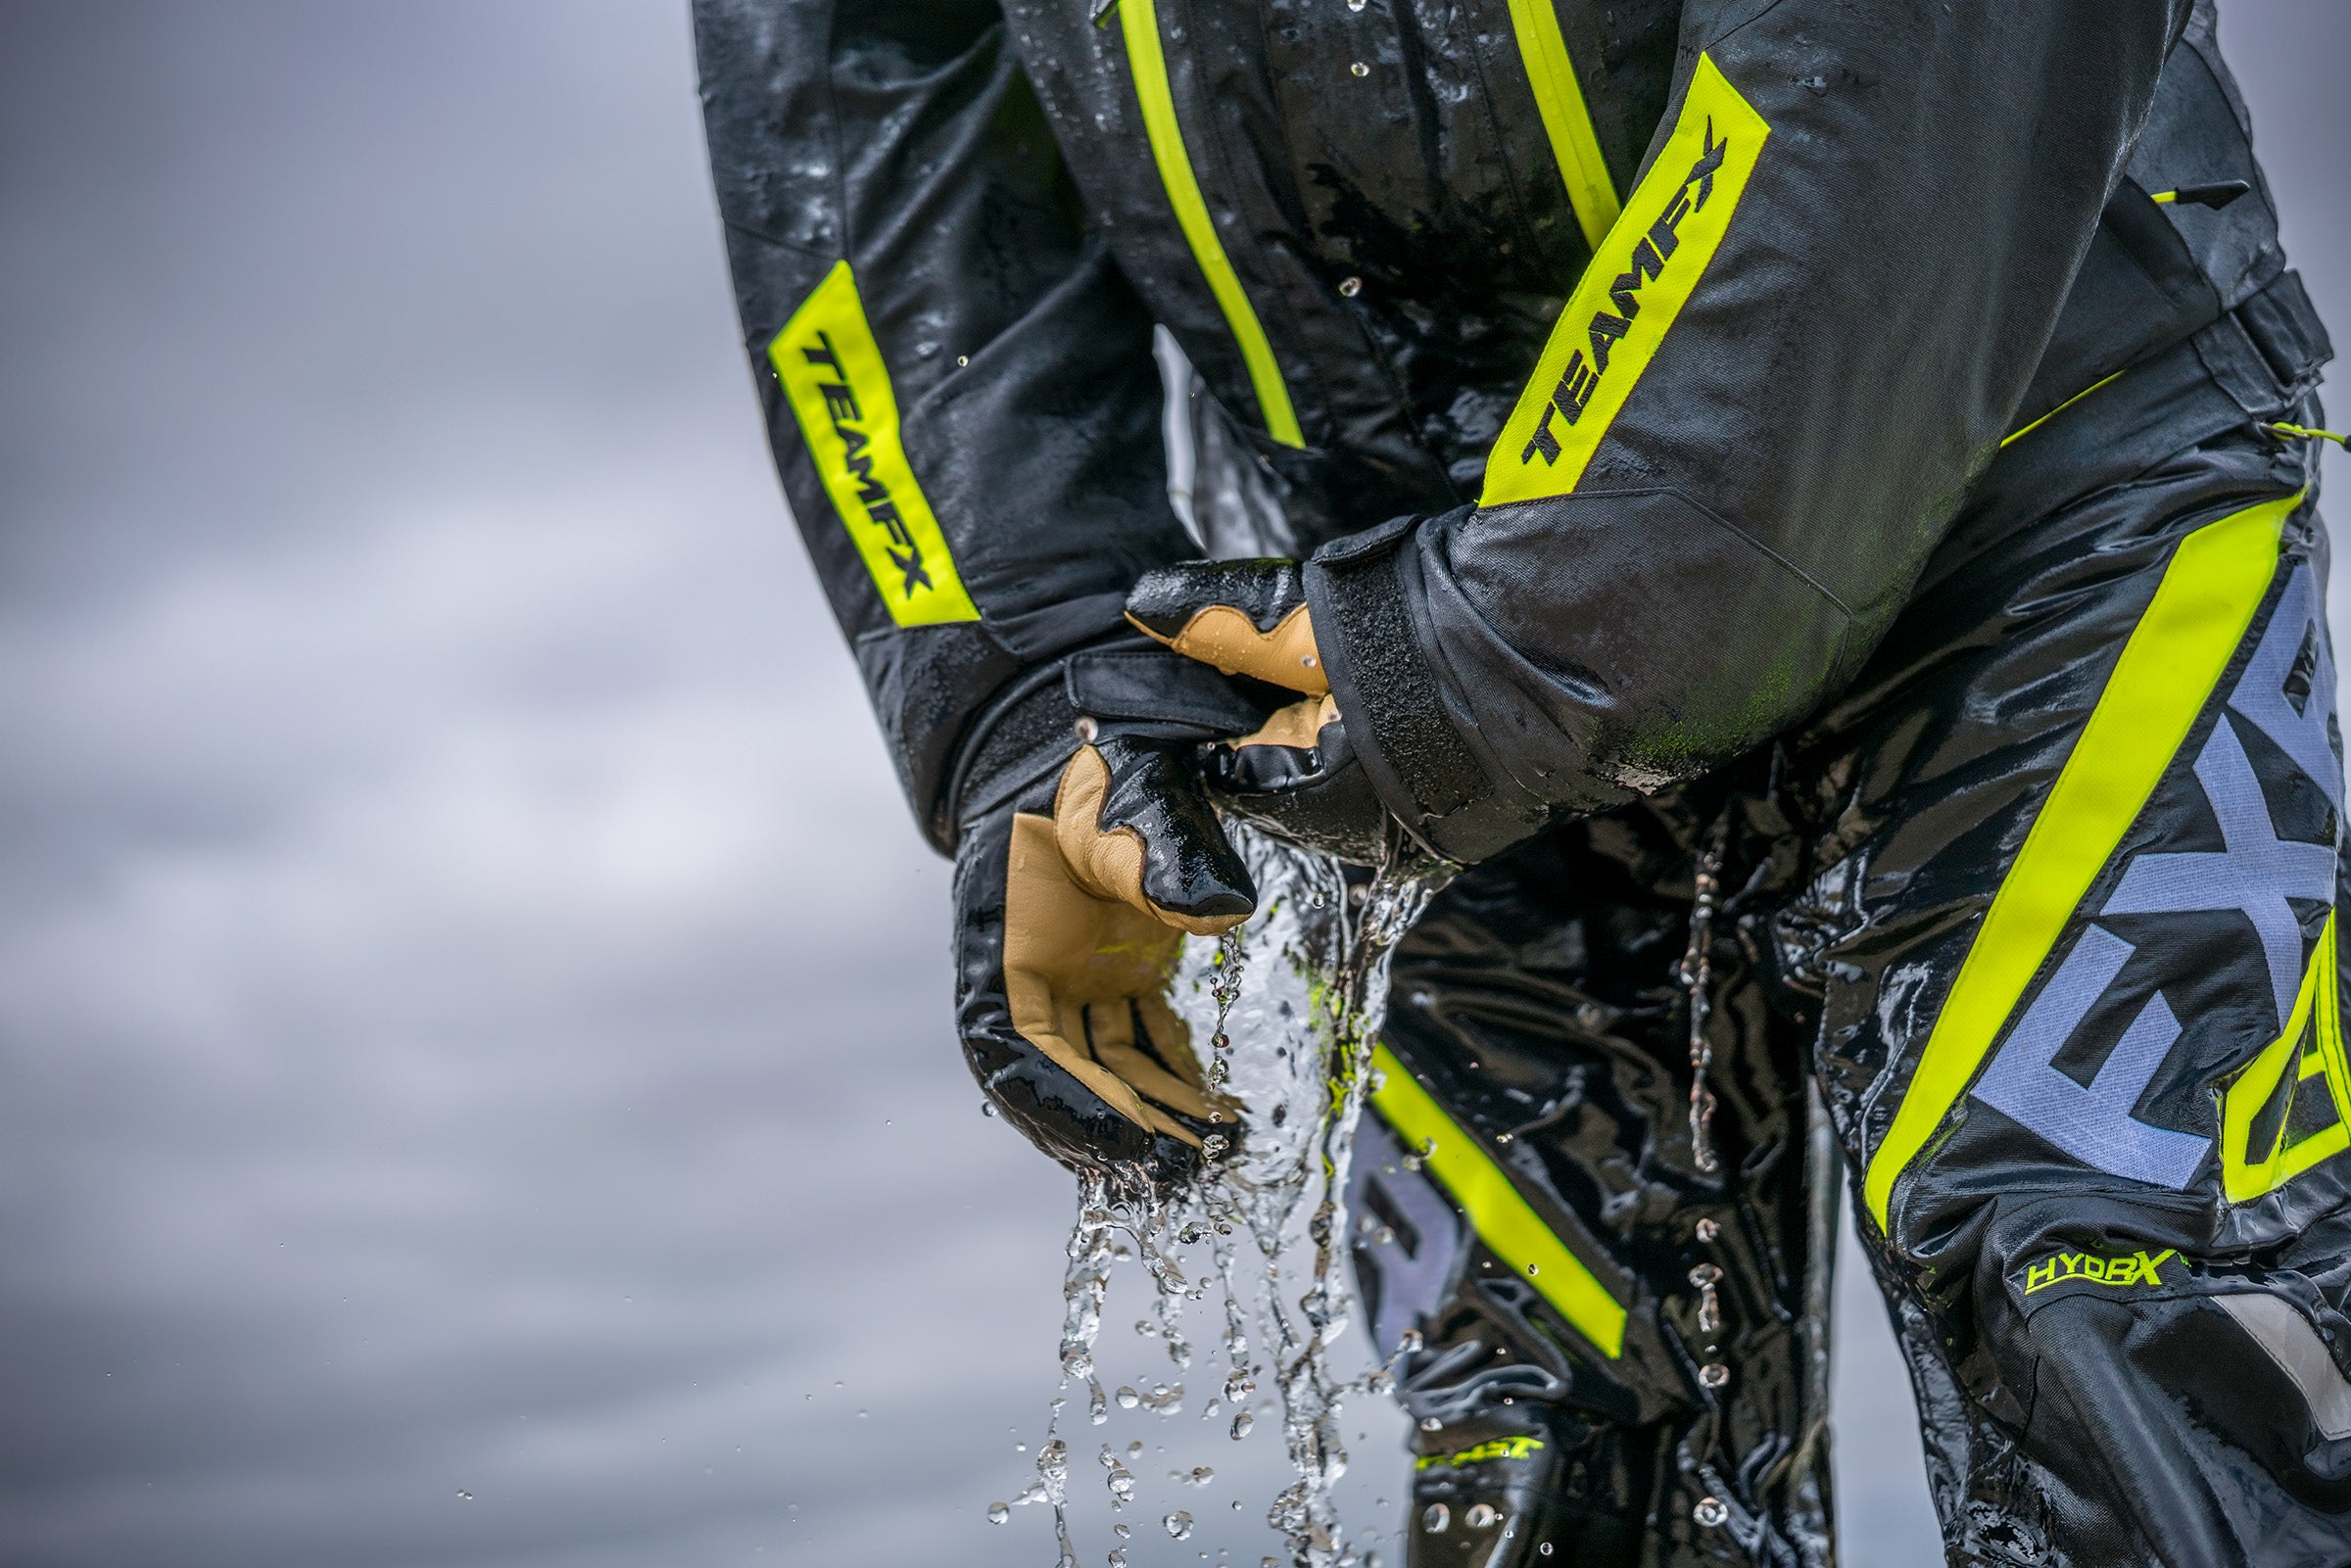 An image of a guy in FXR's F.A.S.T suit demonstrating the rapid drainage feature